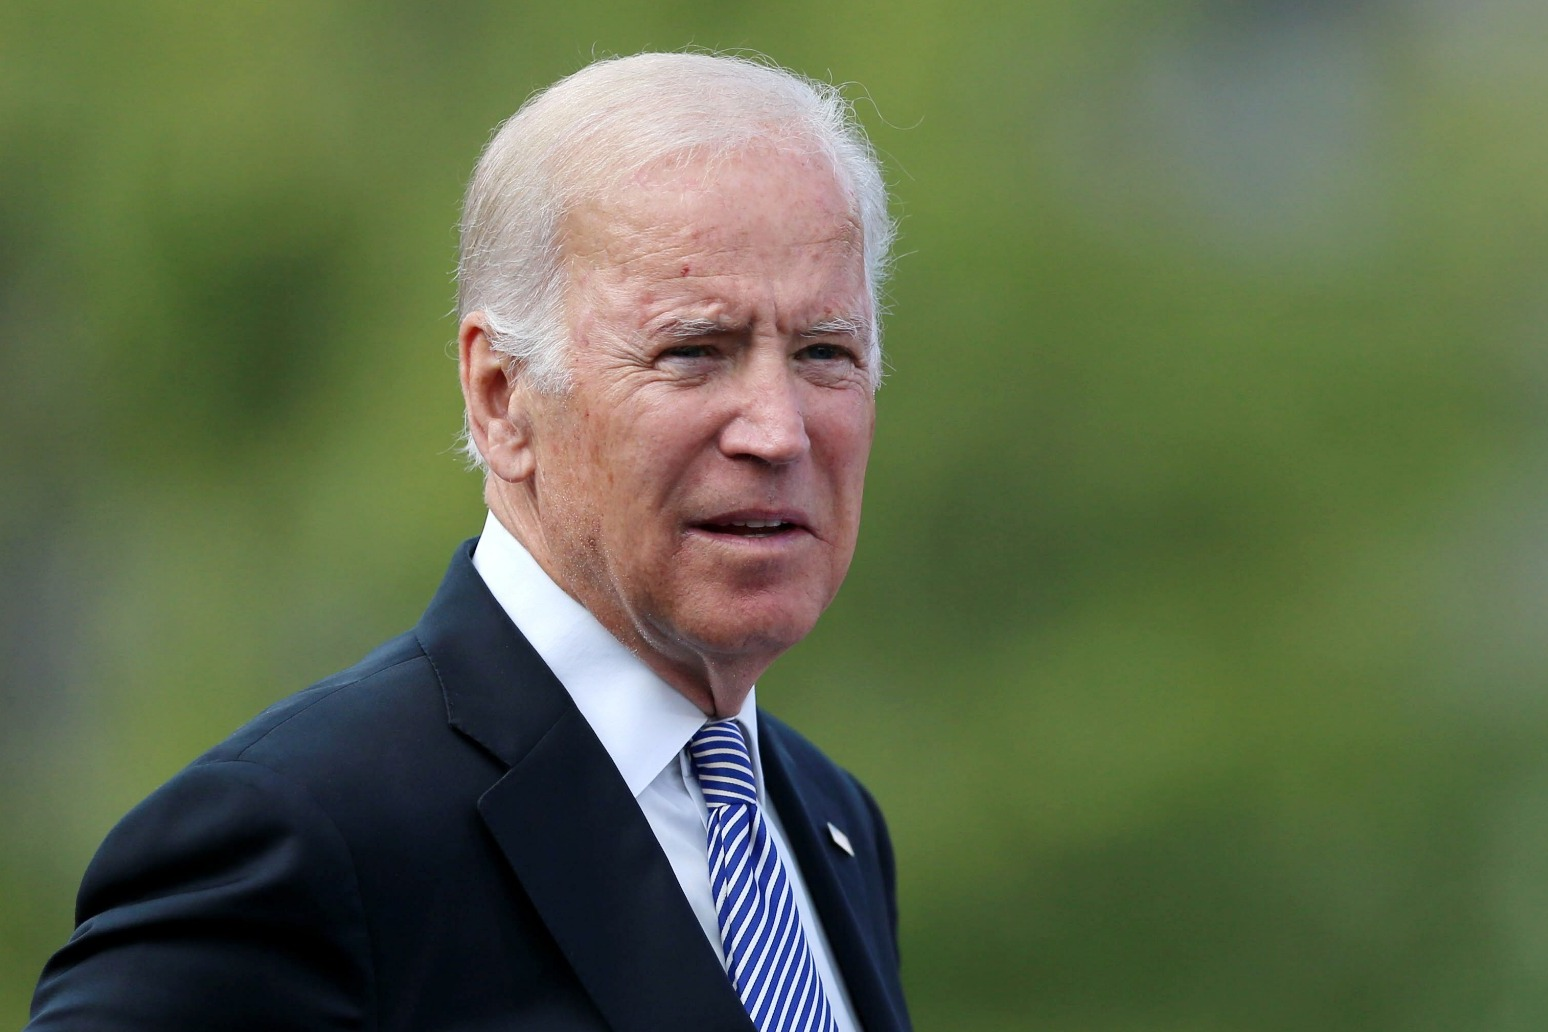 Joe Biden wins US election and will become 46th president